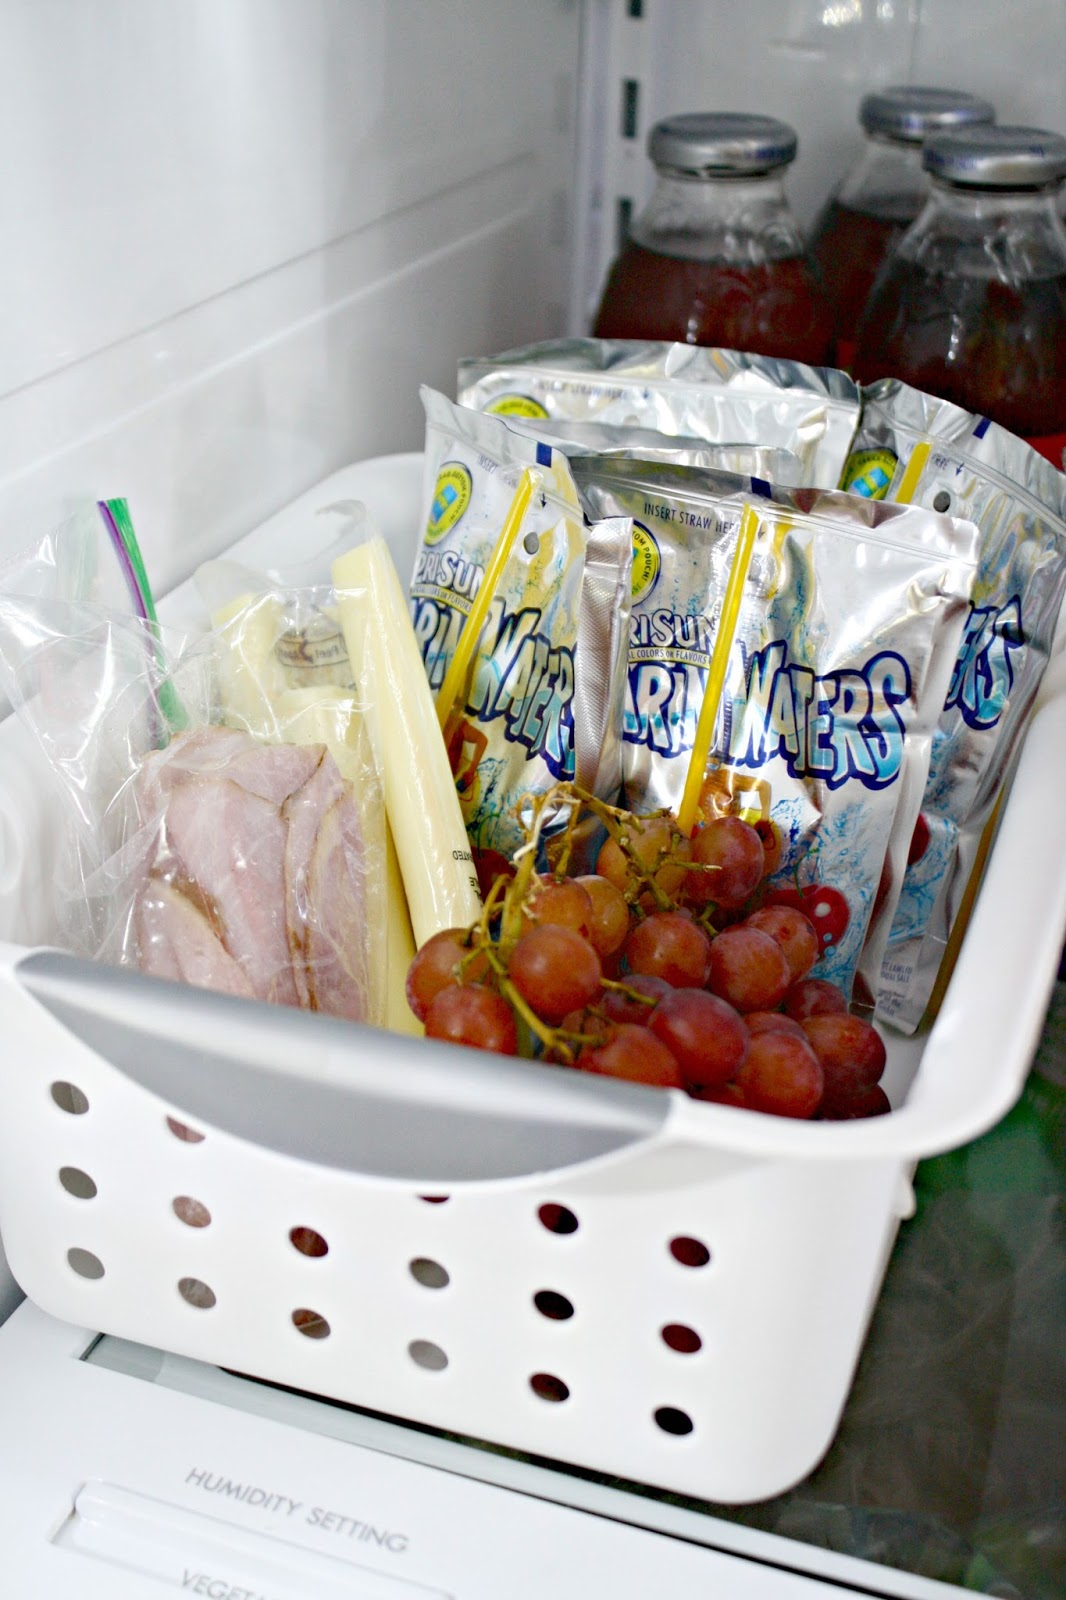 lunch basket in fridge